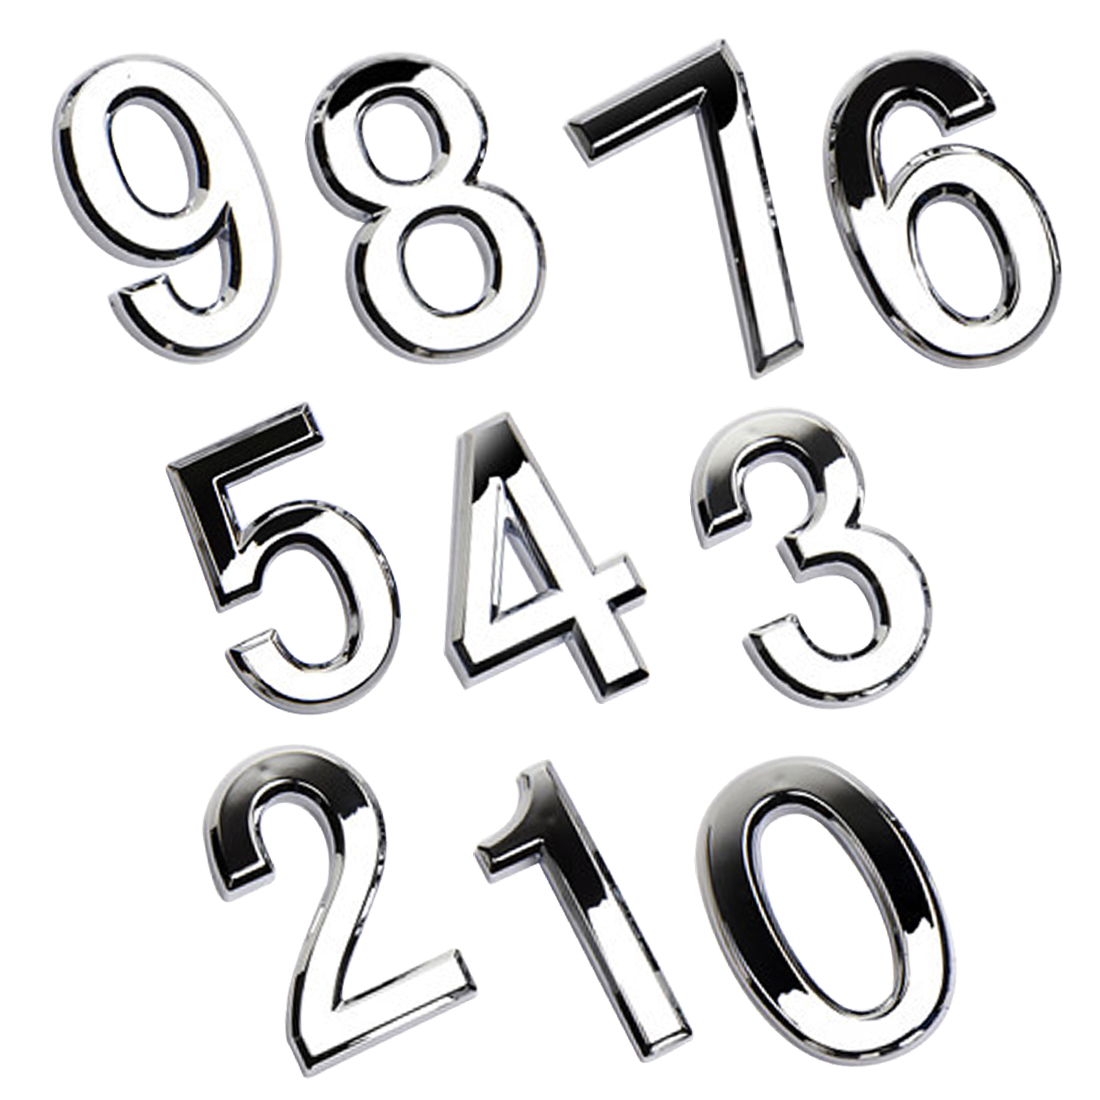 1pcs Modern Silver House Hotel Door Address Plaque Number Digits Sticker Plate Sign Convinient Room Gate Number1pcs Modern Silver House Hotel Door Address Plaque Number Digits Sticker Plate Sign Convinient Room Gate Number